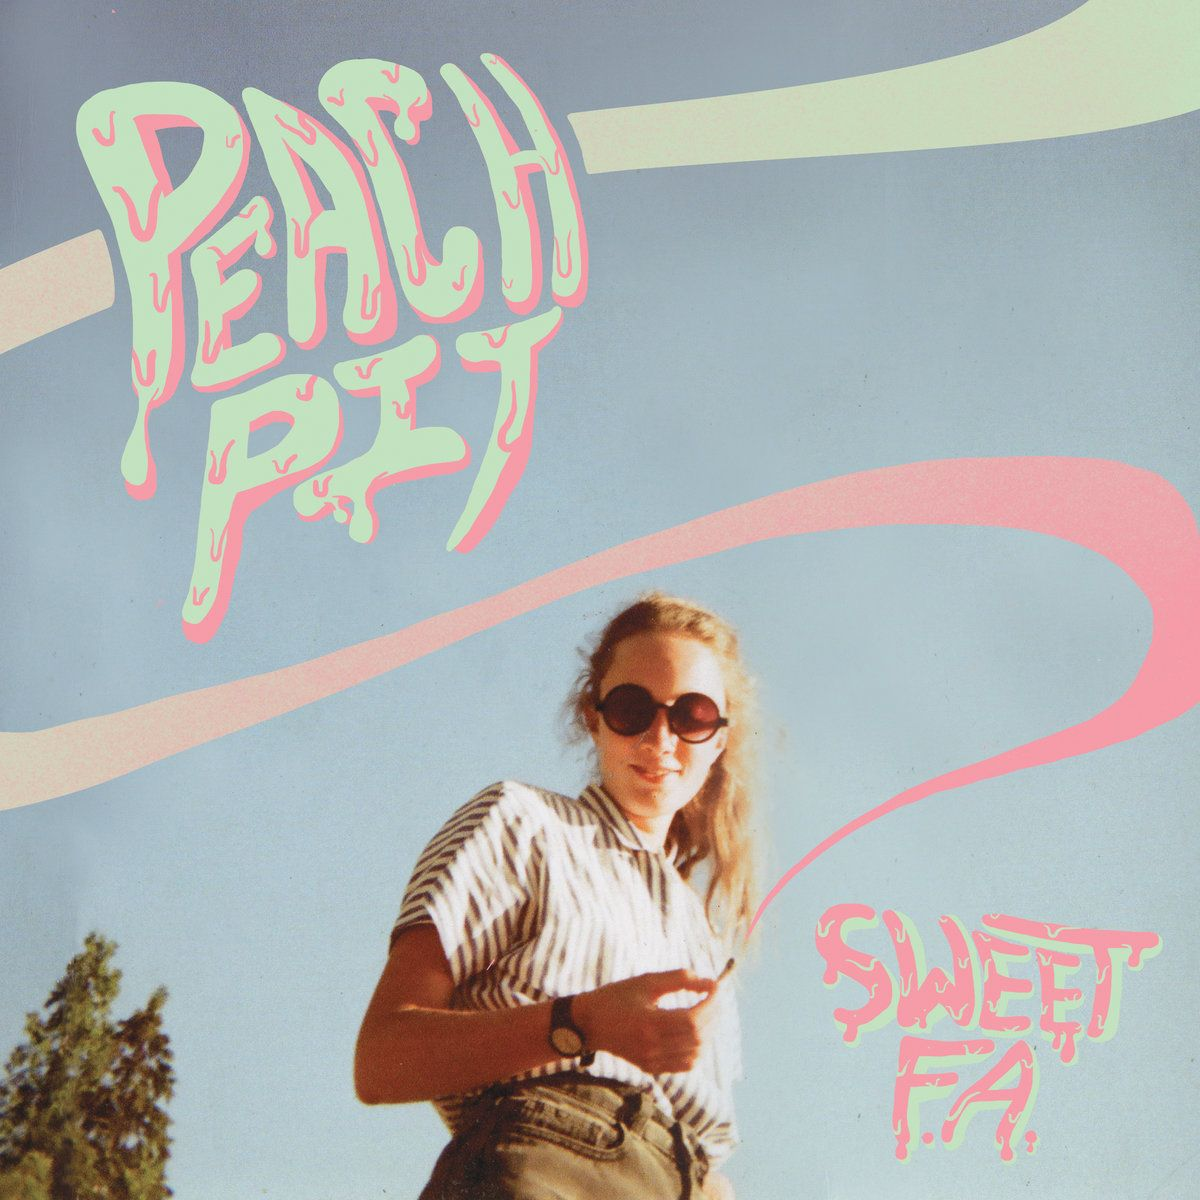 Image Result For Peach Pit Sweet Fa Album Cover Cd Cover